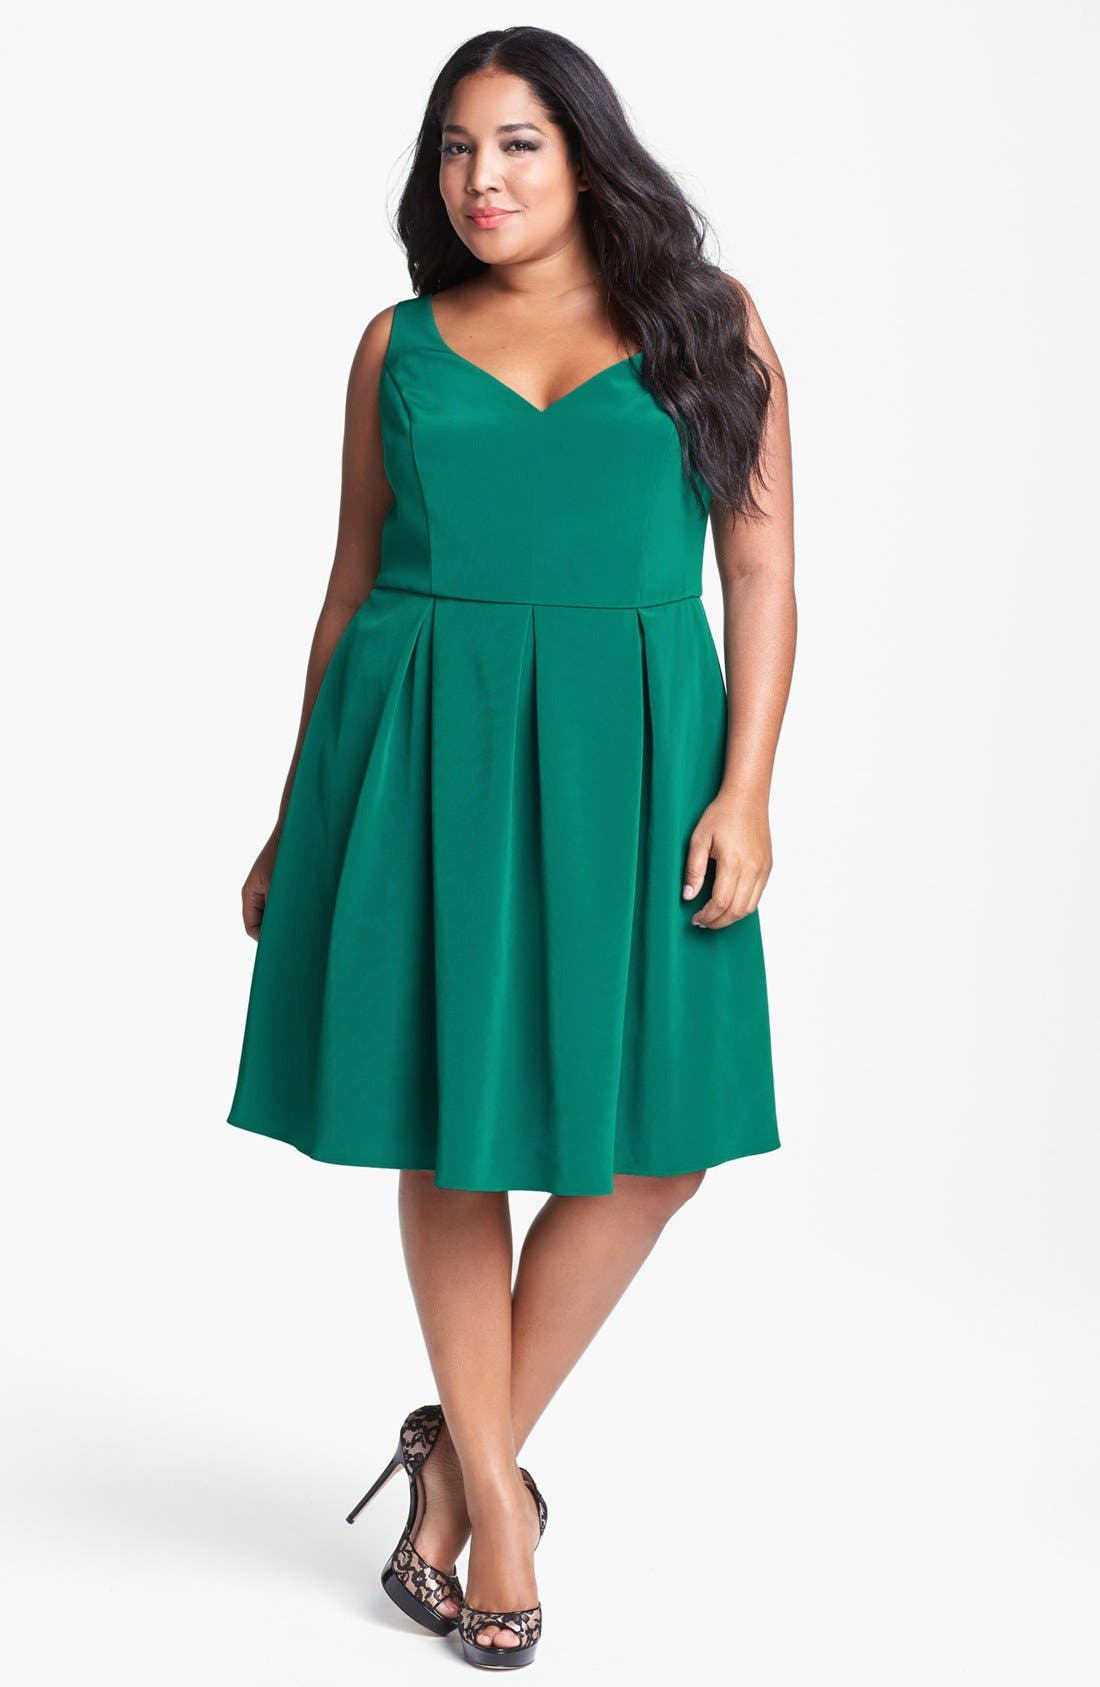 Alternate Image 1 Selected - ABS Luxury Collection Fit & Flare Dress (Plus Size)